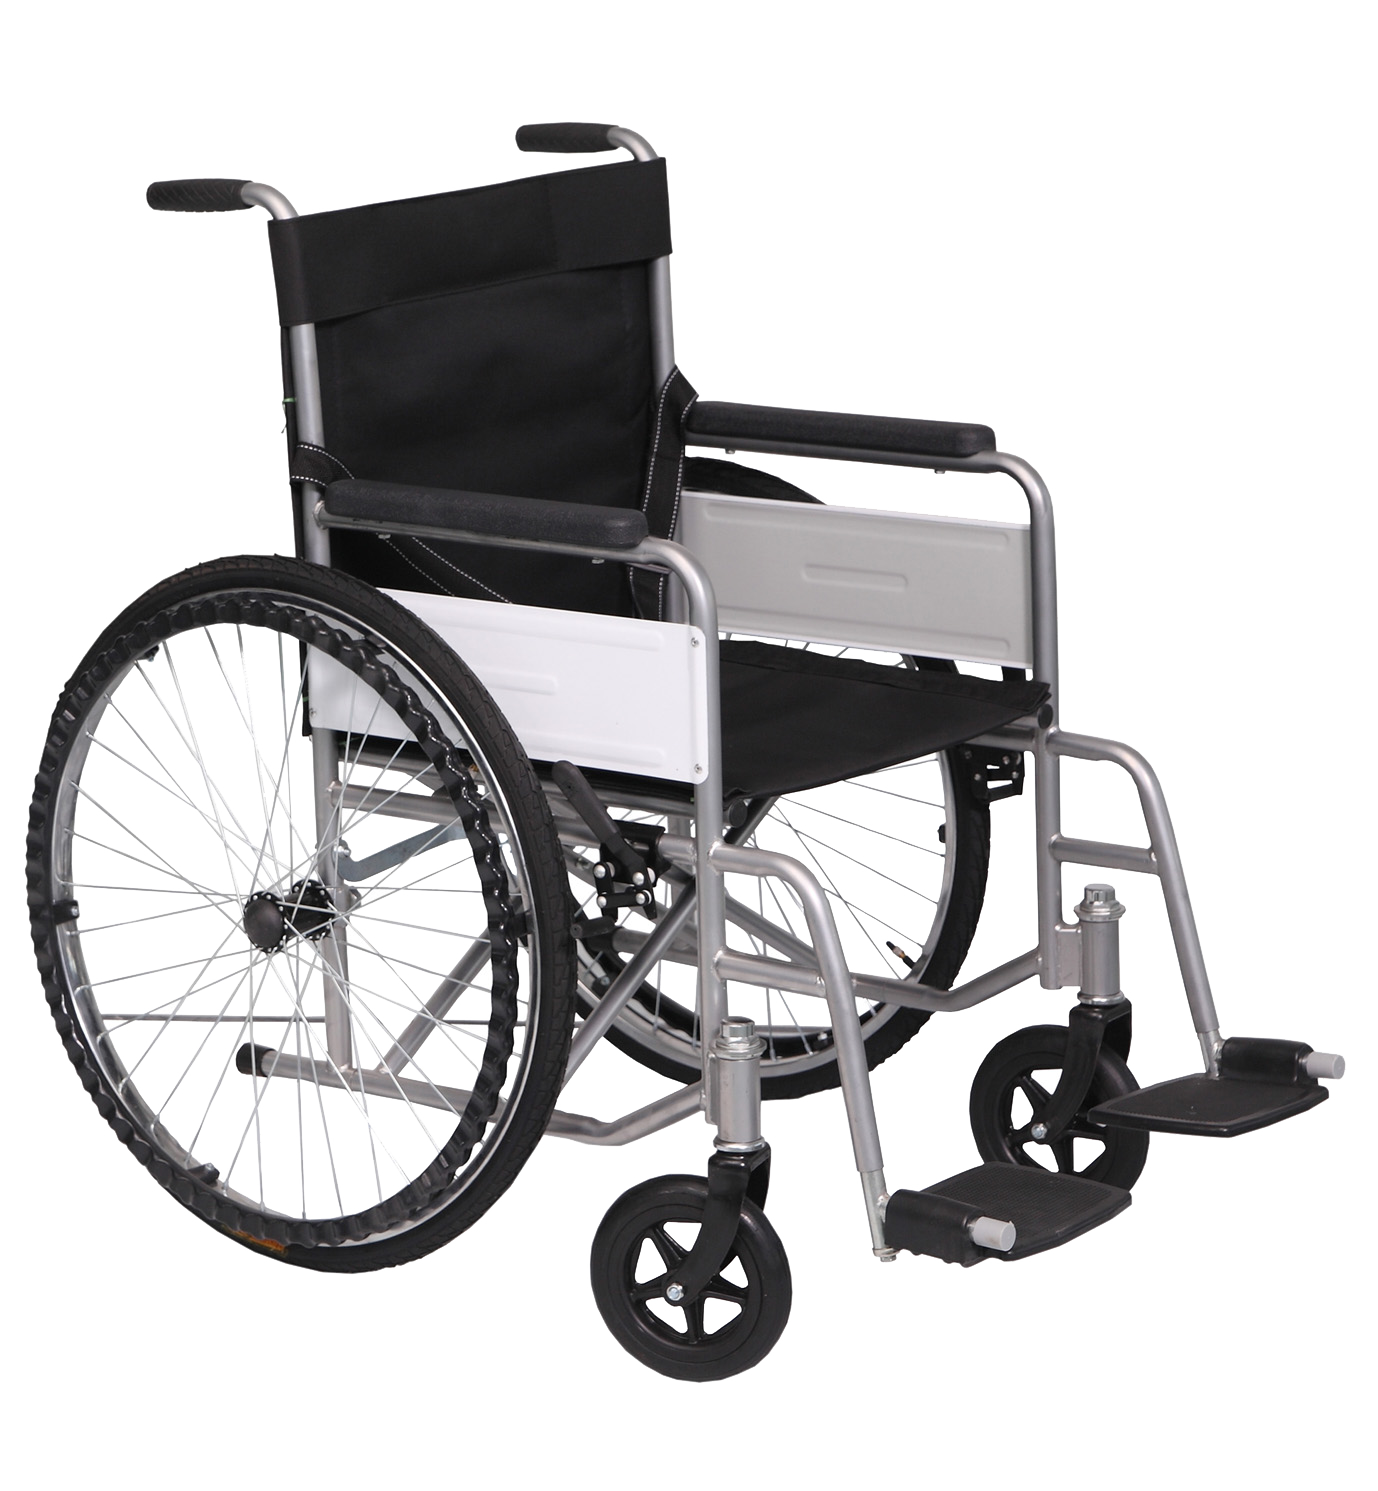 Black Wheelchair Png image #40971